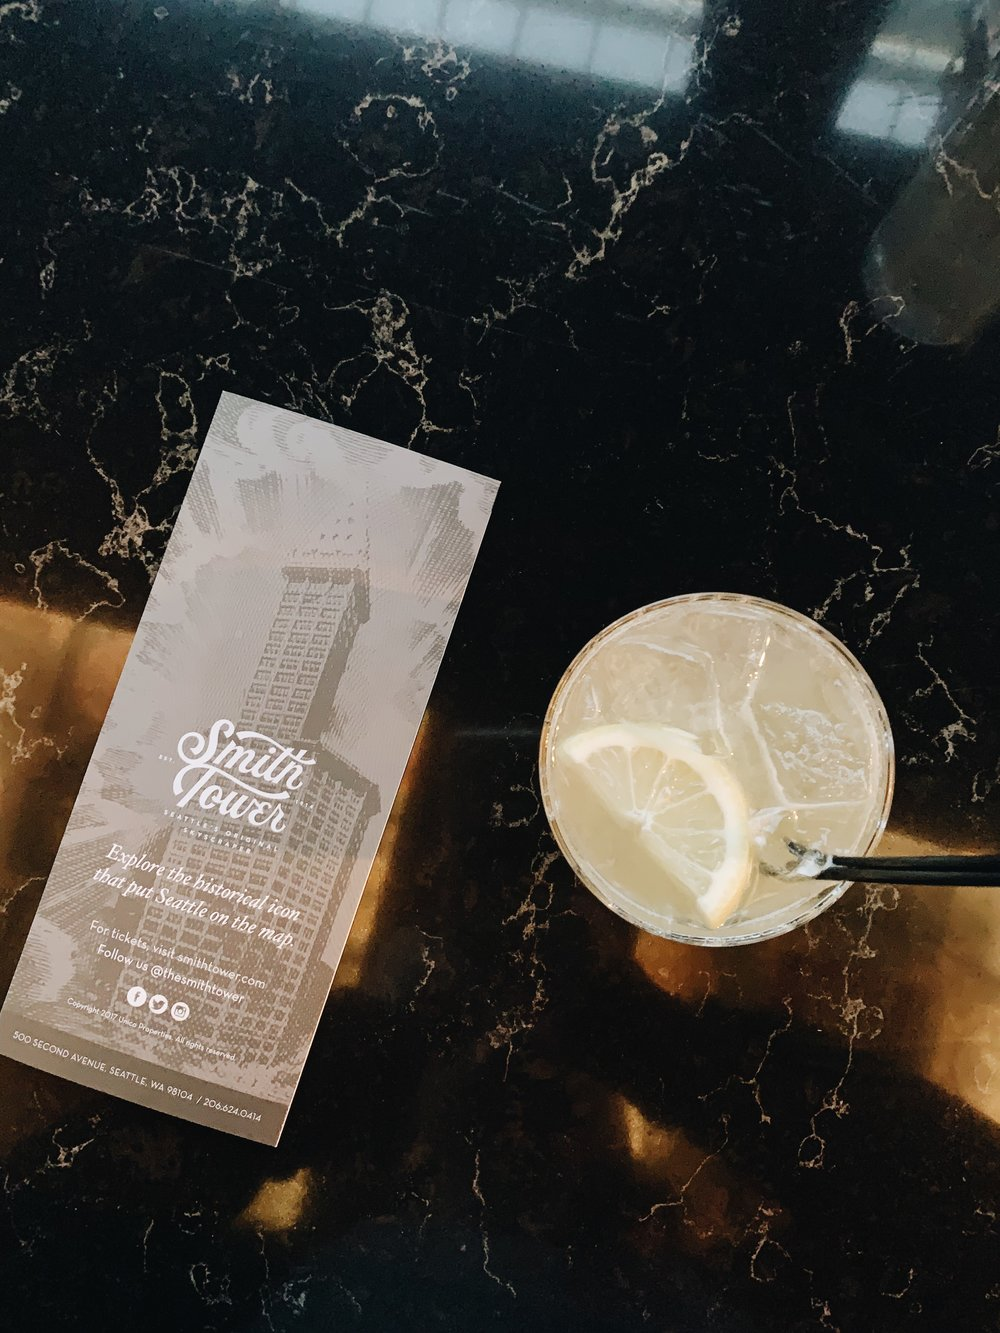 get the gold rush! it's a tasty burbon cocktail for happy hour drinks at smith tower in downtown seattle